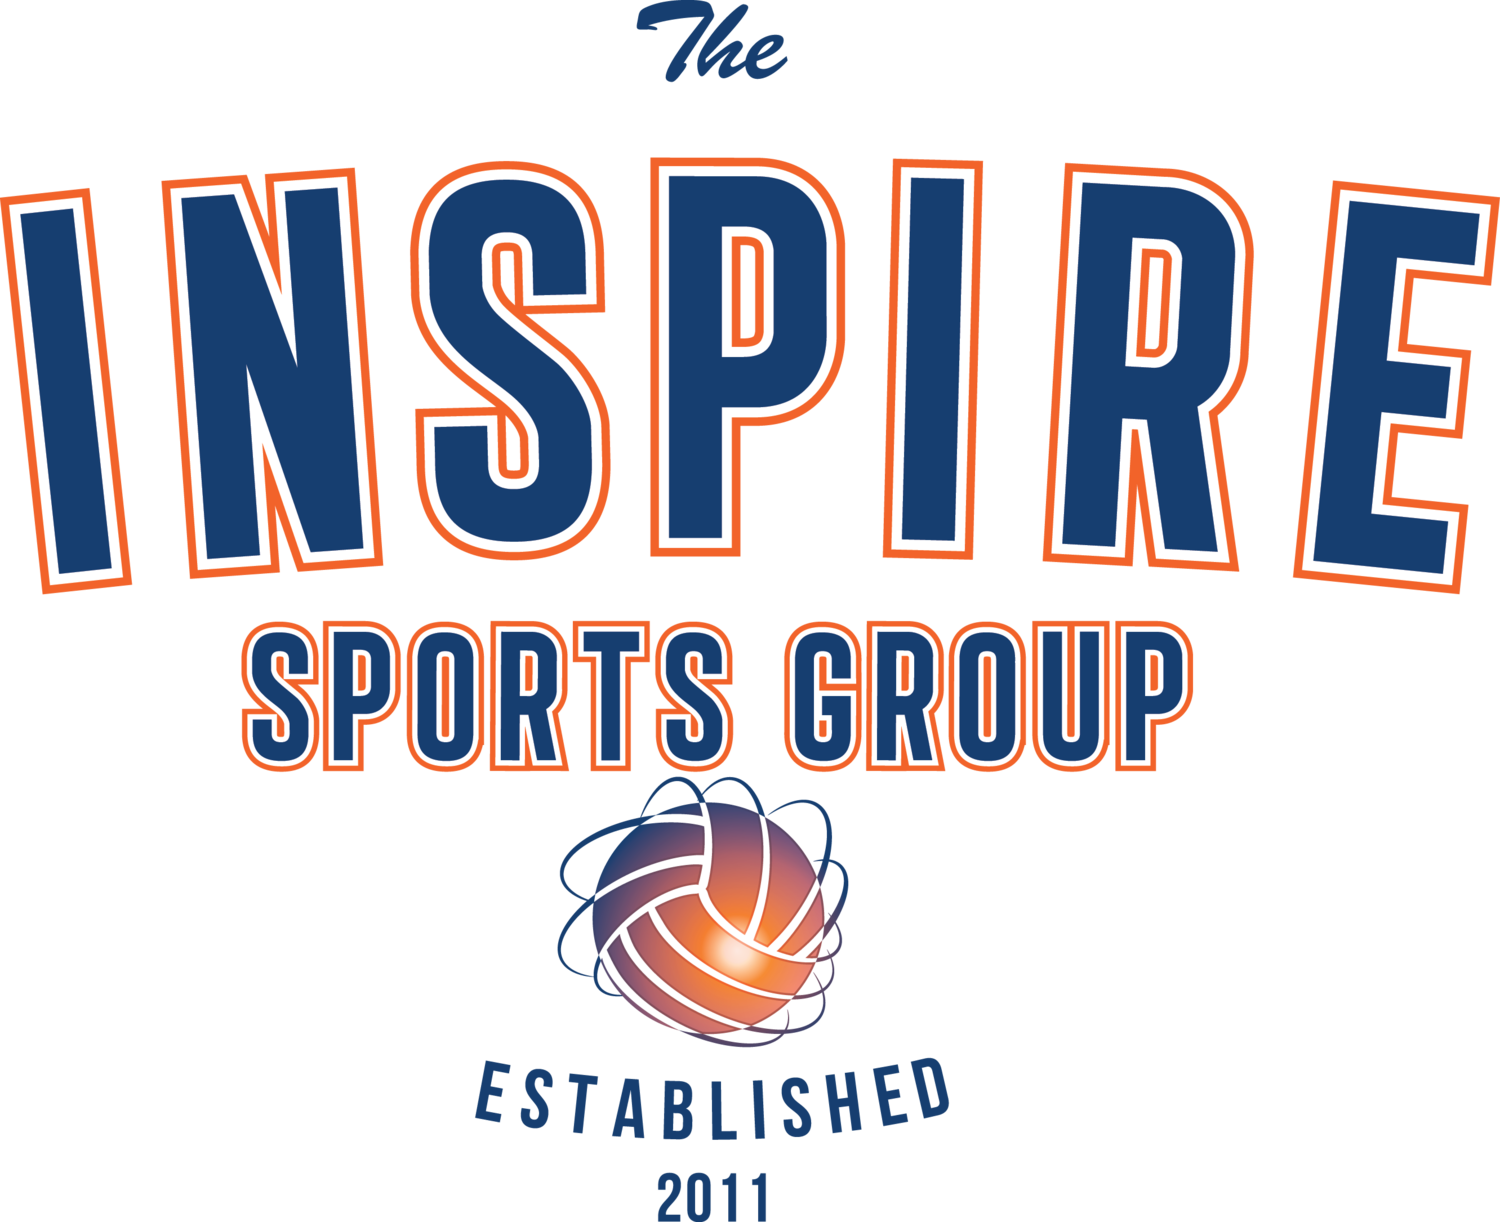 The Inspire Sports Group